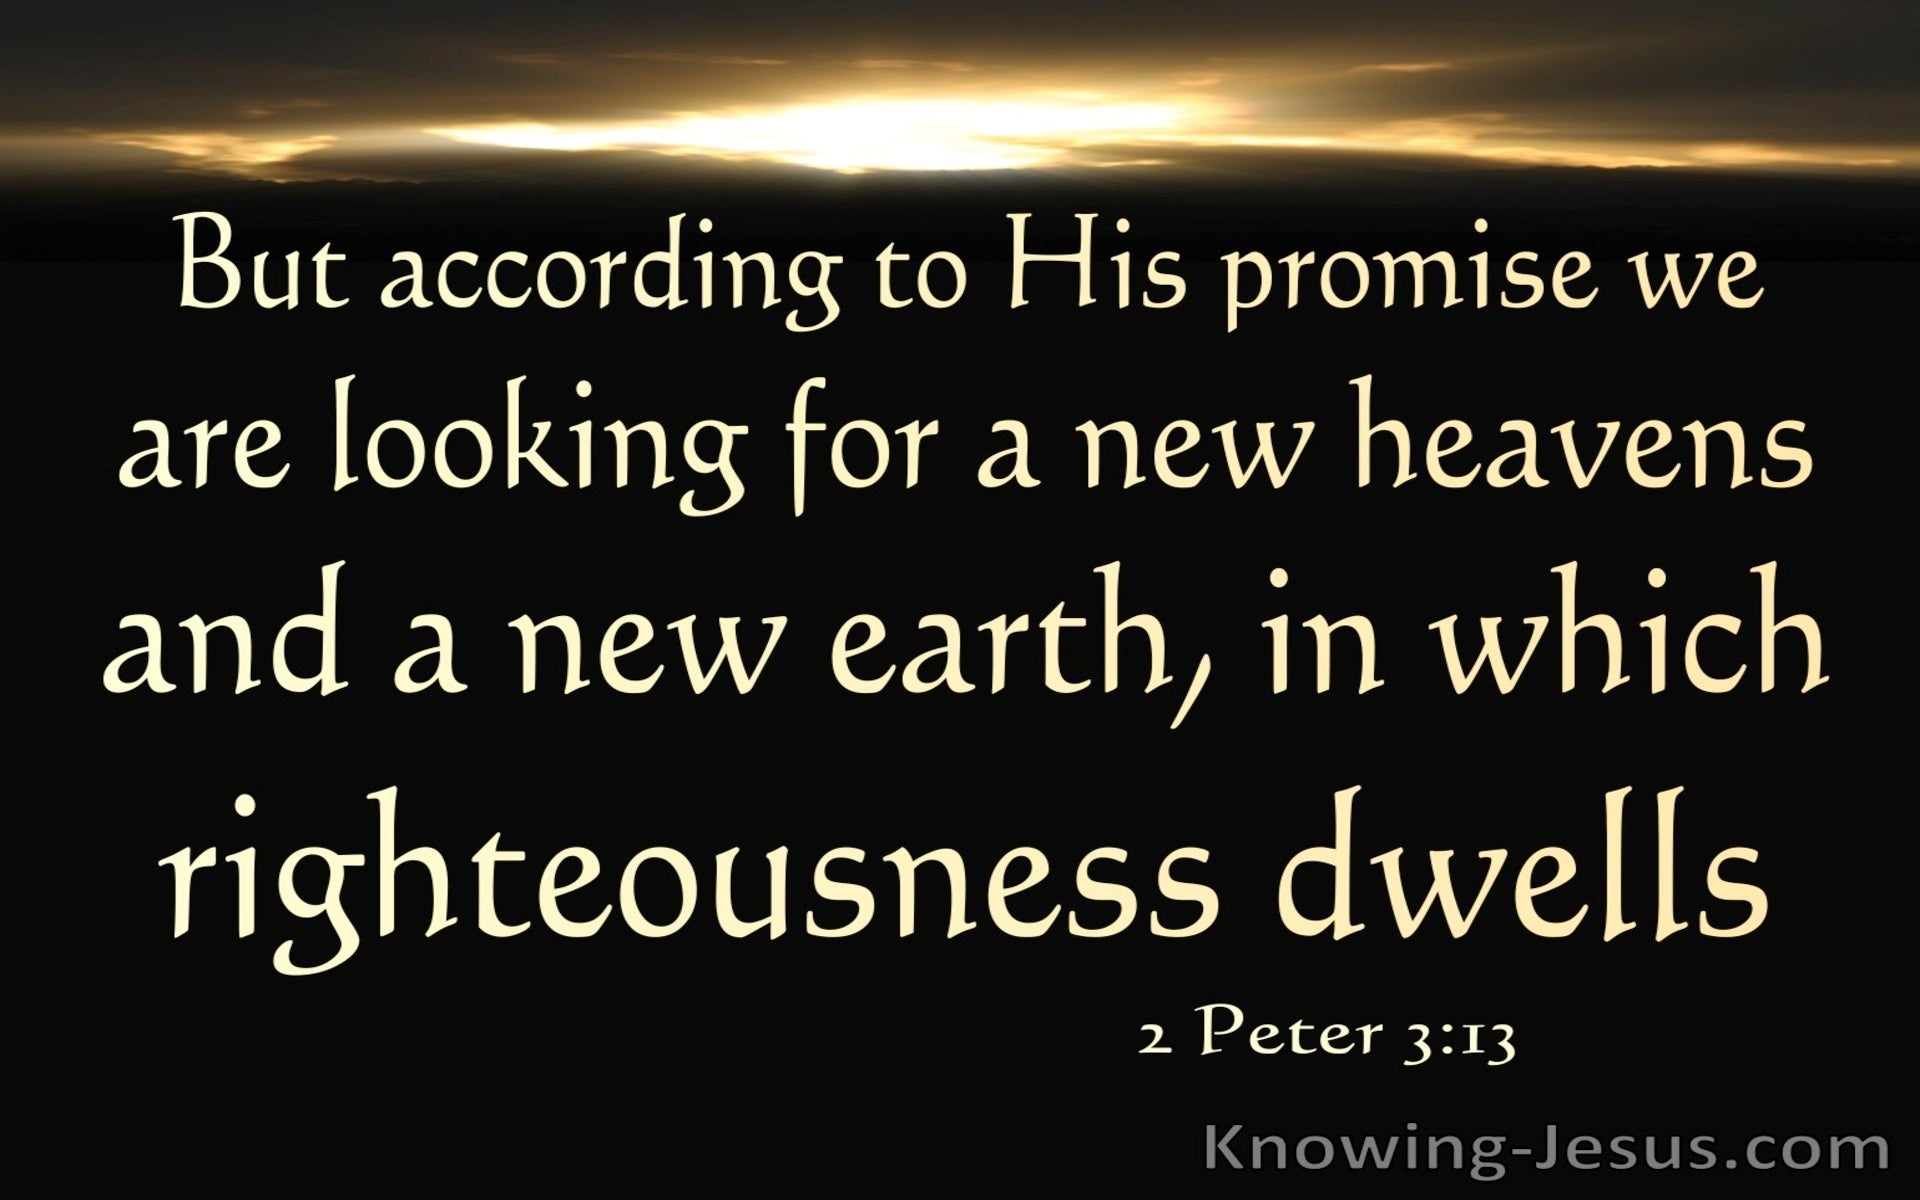 2 Peter 3:13 A New Heaven And A New Earth (black)